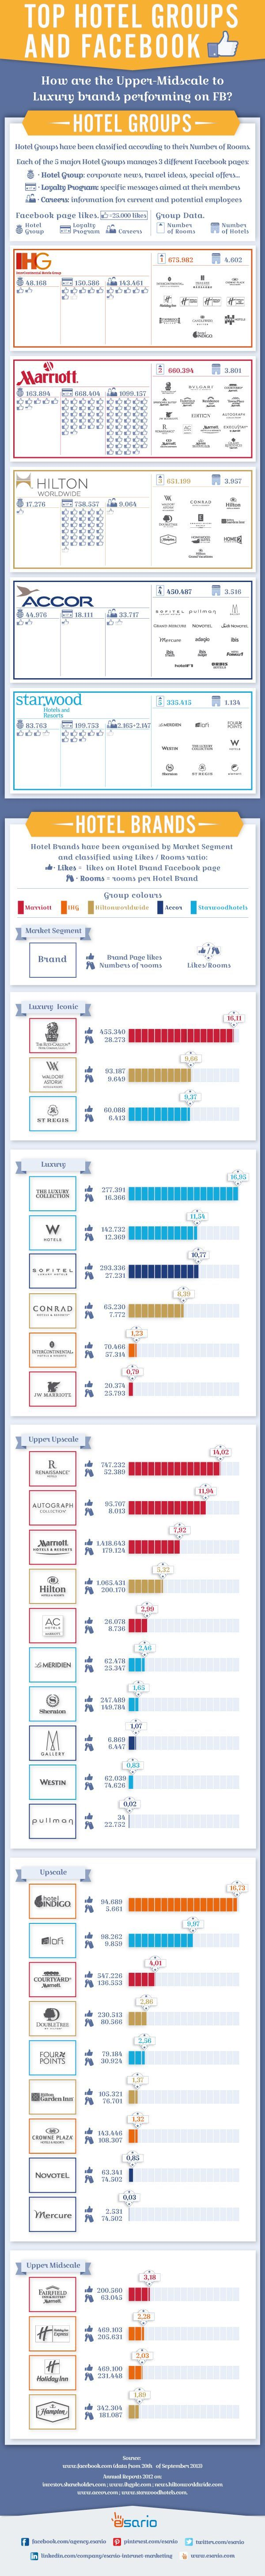 Top Hotel Groups And Facebook